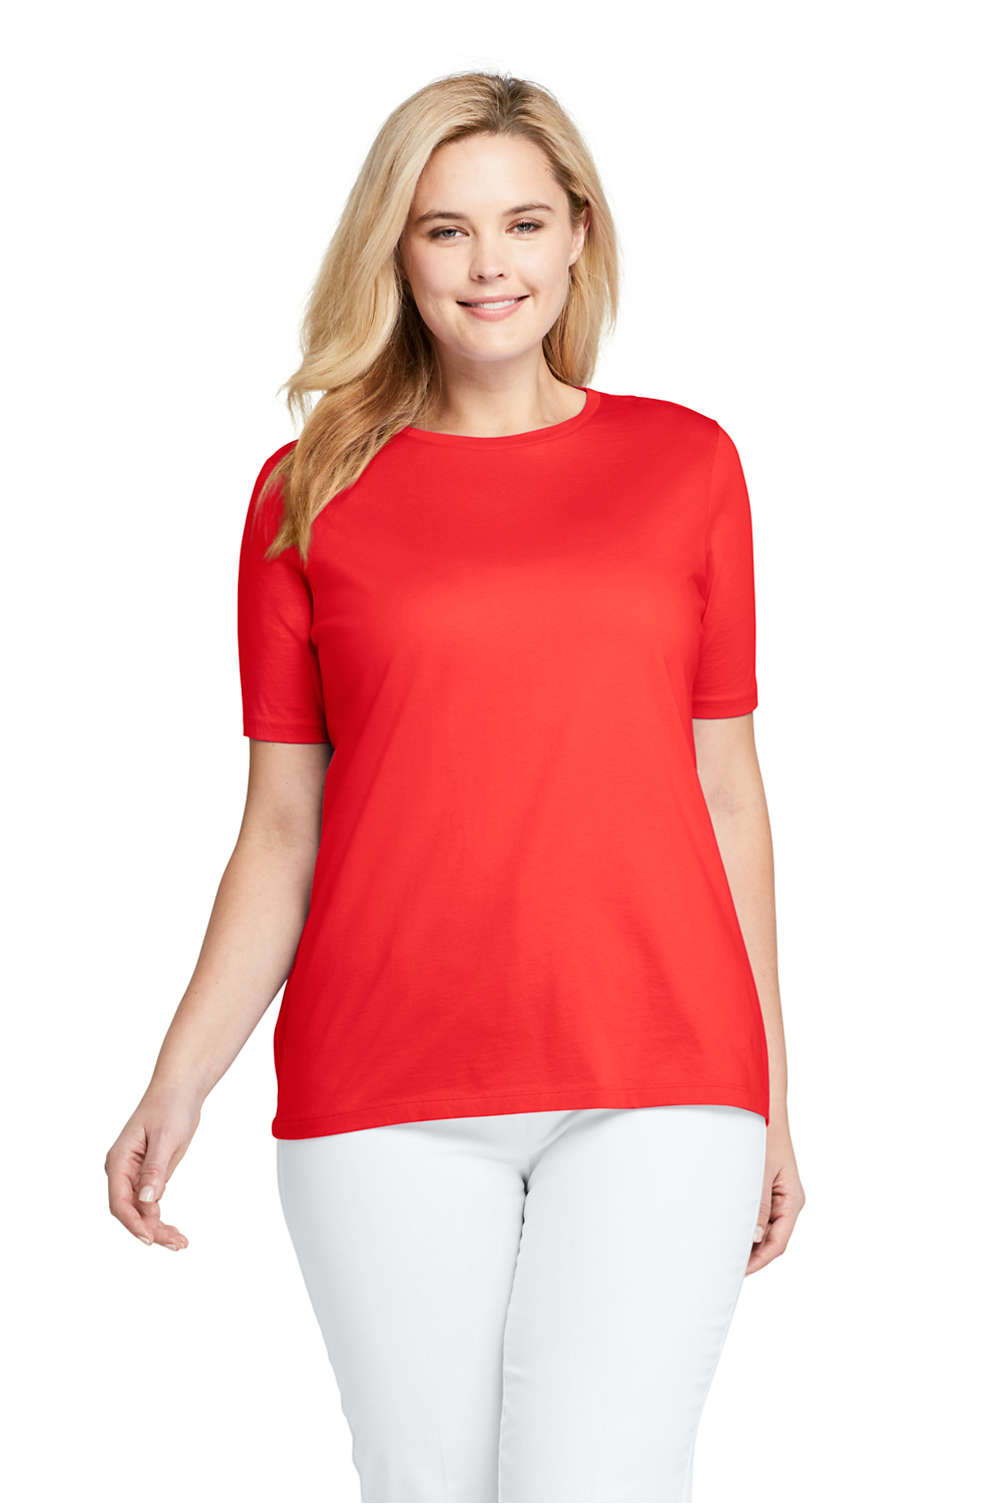 265fd9e997d4 Women's Plus Size Supima Cotton Short Sleeve T-shirt - Relaxed Crewneck